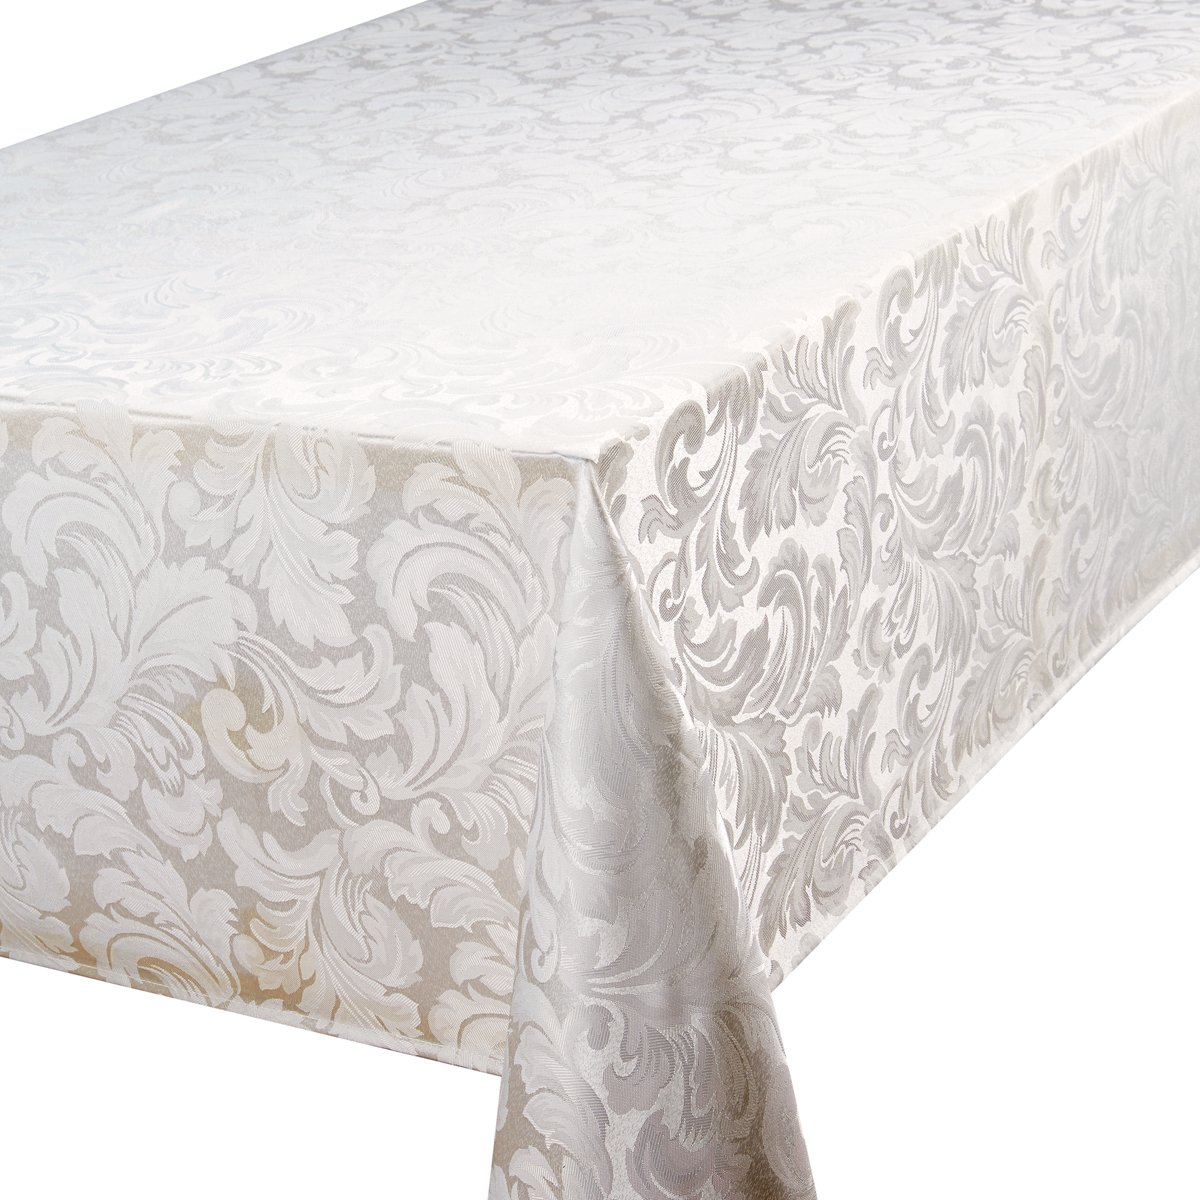 Christmas Tablescape Décor - Christmas damask elegant glacier cream 6 - 8 place rectangular tablecloth